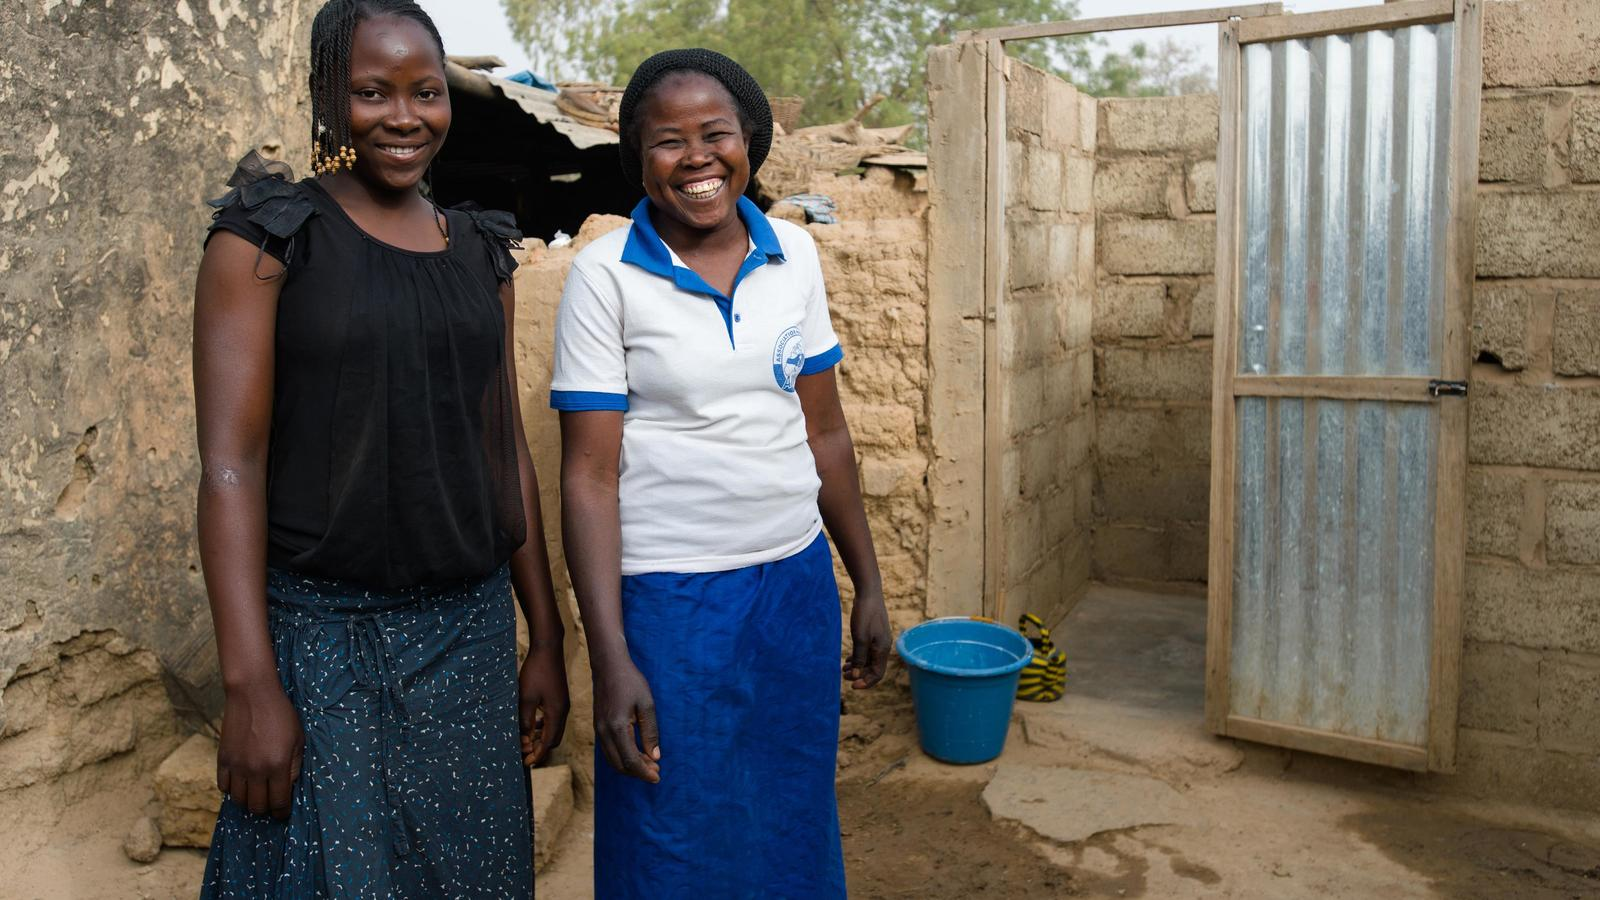 Fati and her daughter Safiatou outside the toilet at their home in Zongo, Burkina Faso.